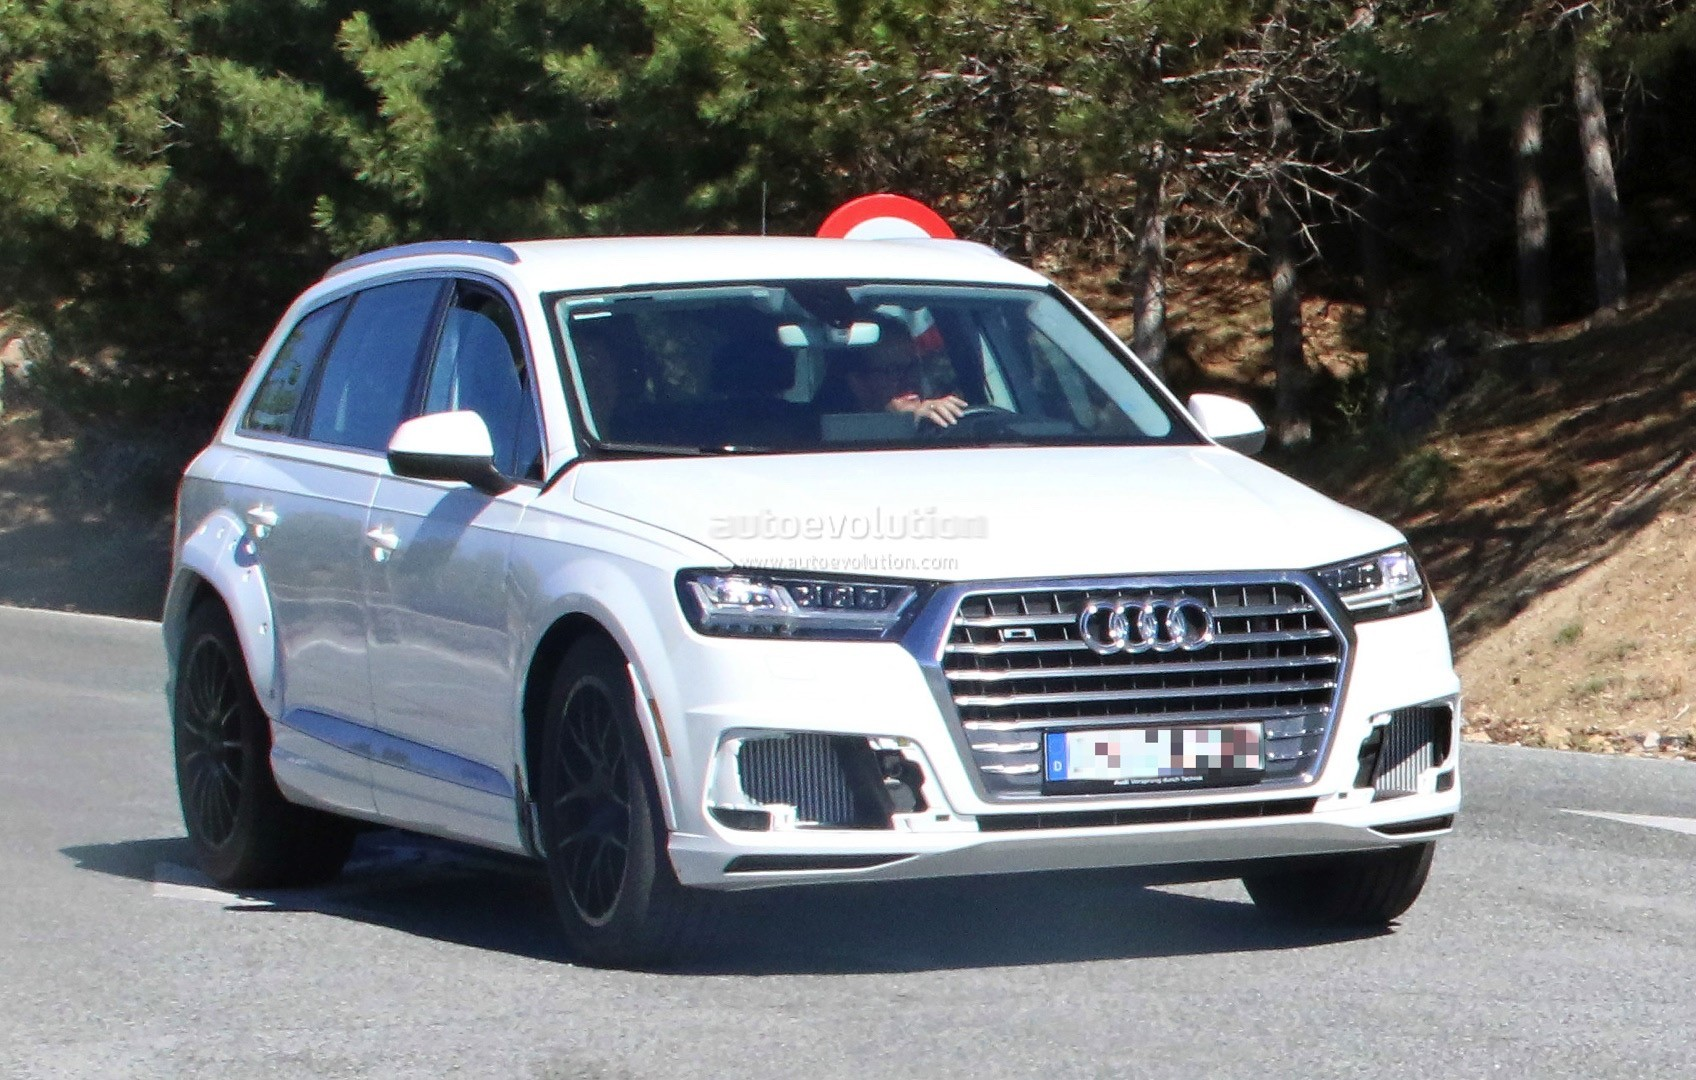 2018 audi q8 test mule spied wearing q7 bodyshell. Black Bedroom Furniture Sets. Home Design Ideas